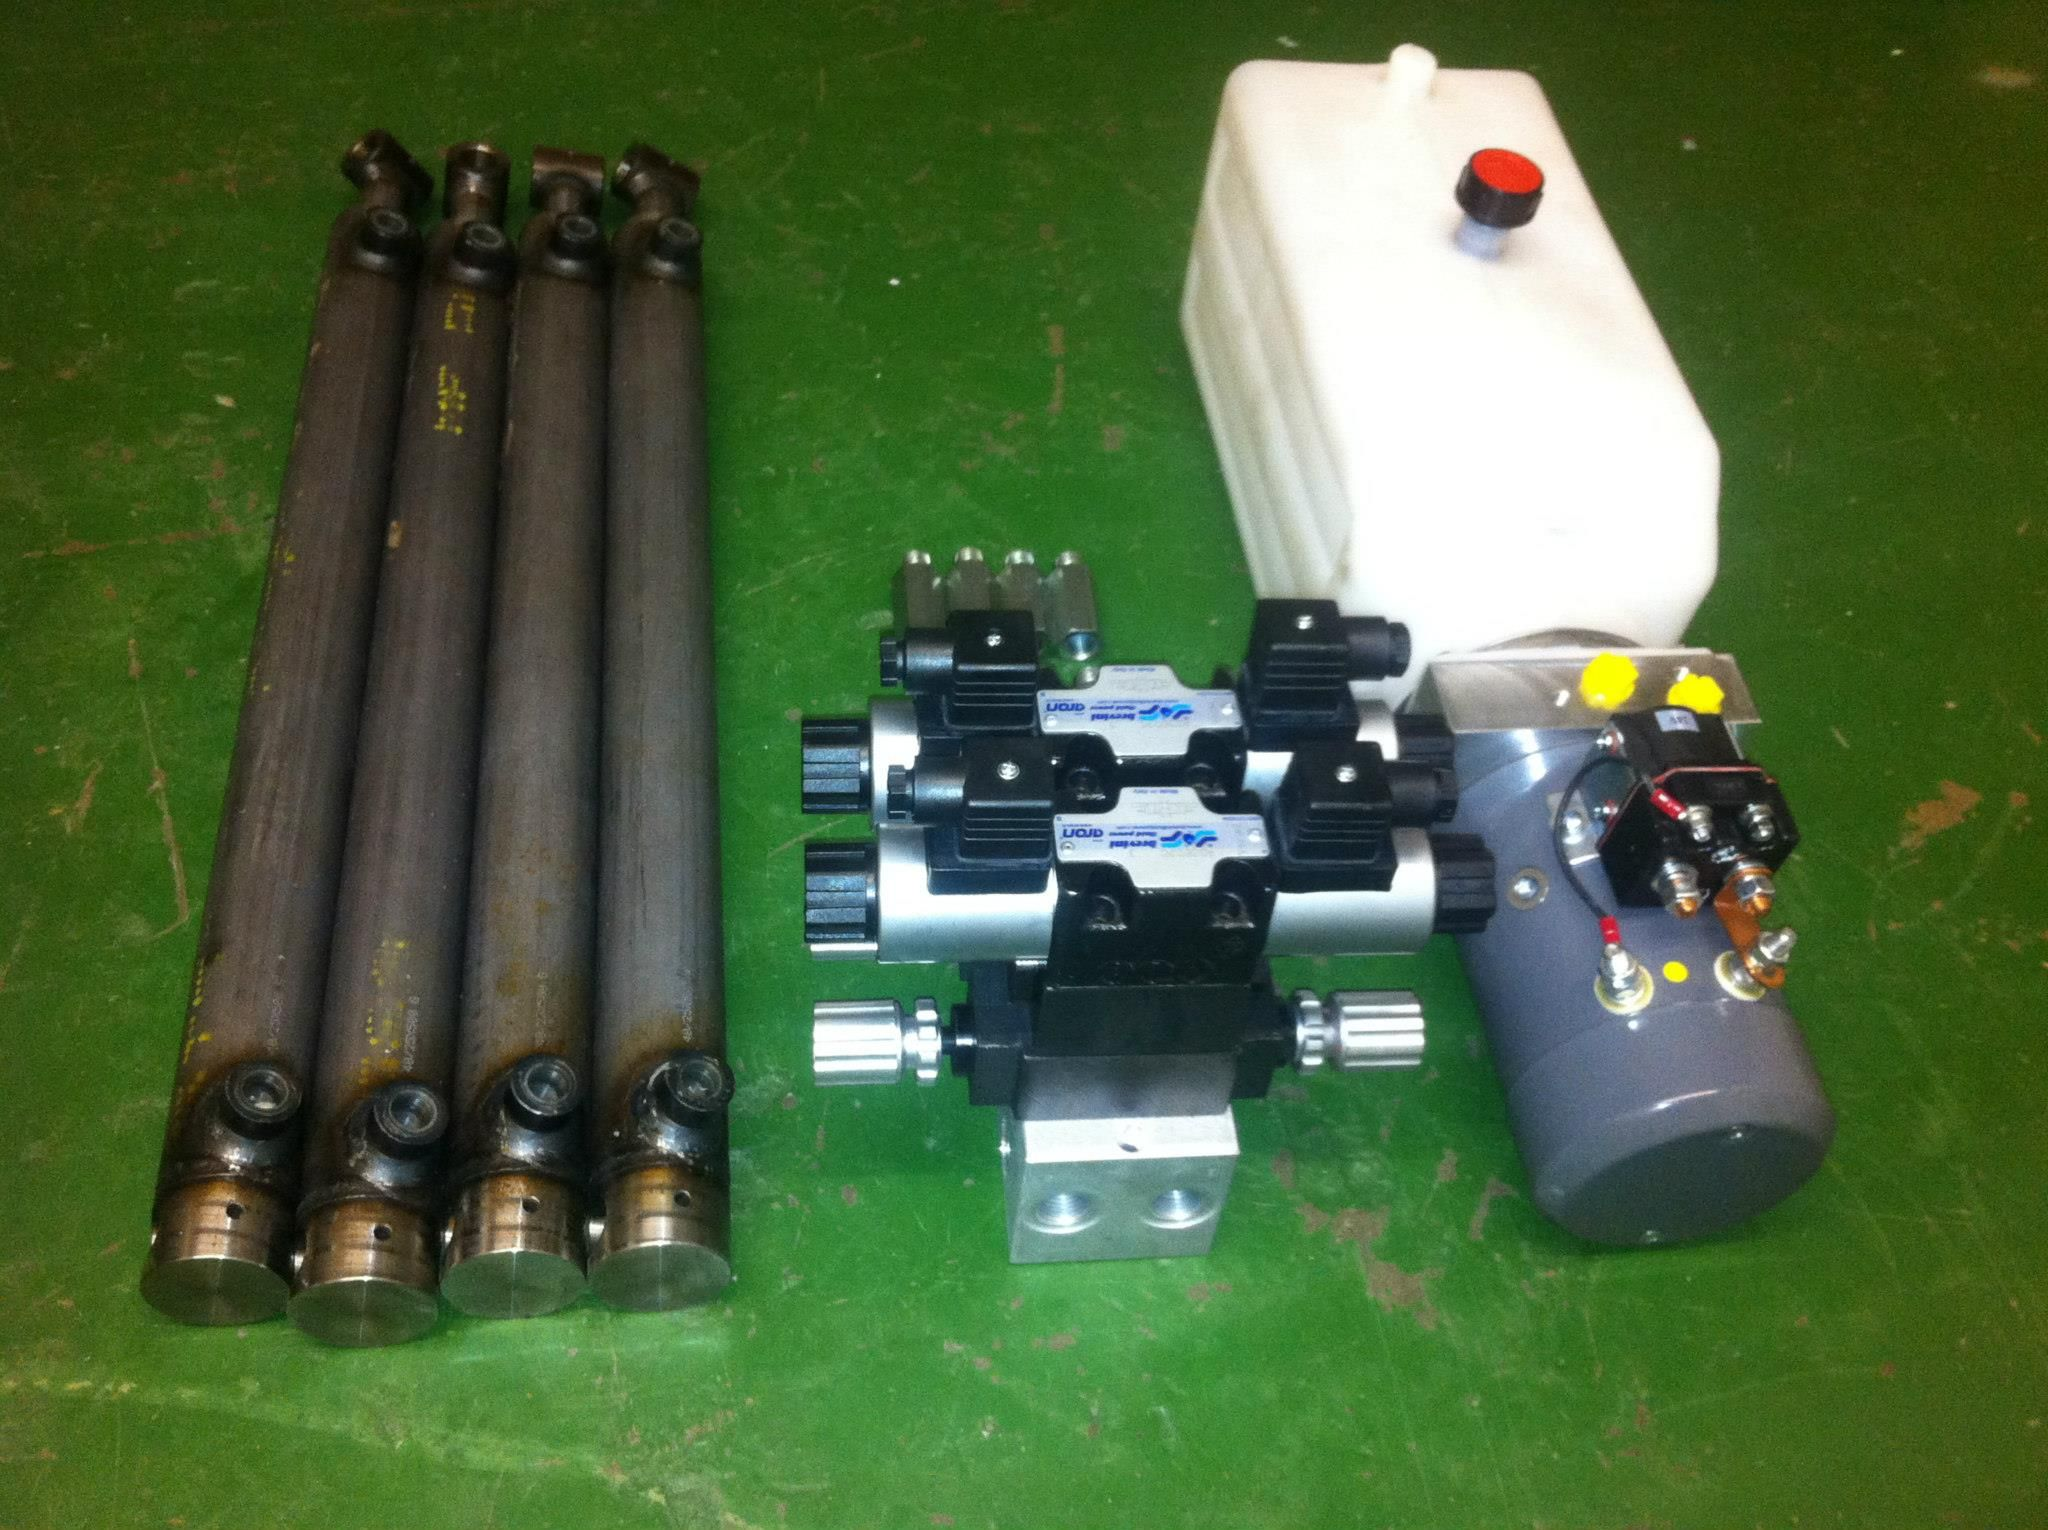 Complete hydraulic system designed for a new customer comprising: G Series 24vDC mini hydraulic power pack, hose burst valves and double acting cylinders. For more information click here http://www.hydraulicsonline.com/hydraulic-system-design